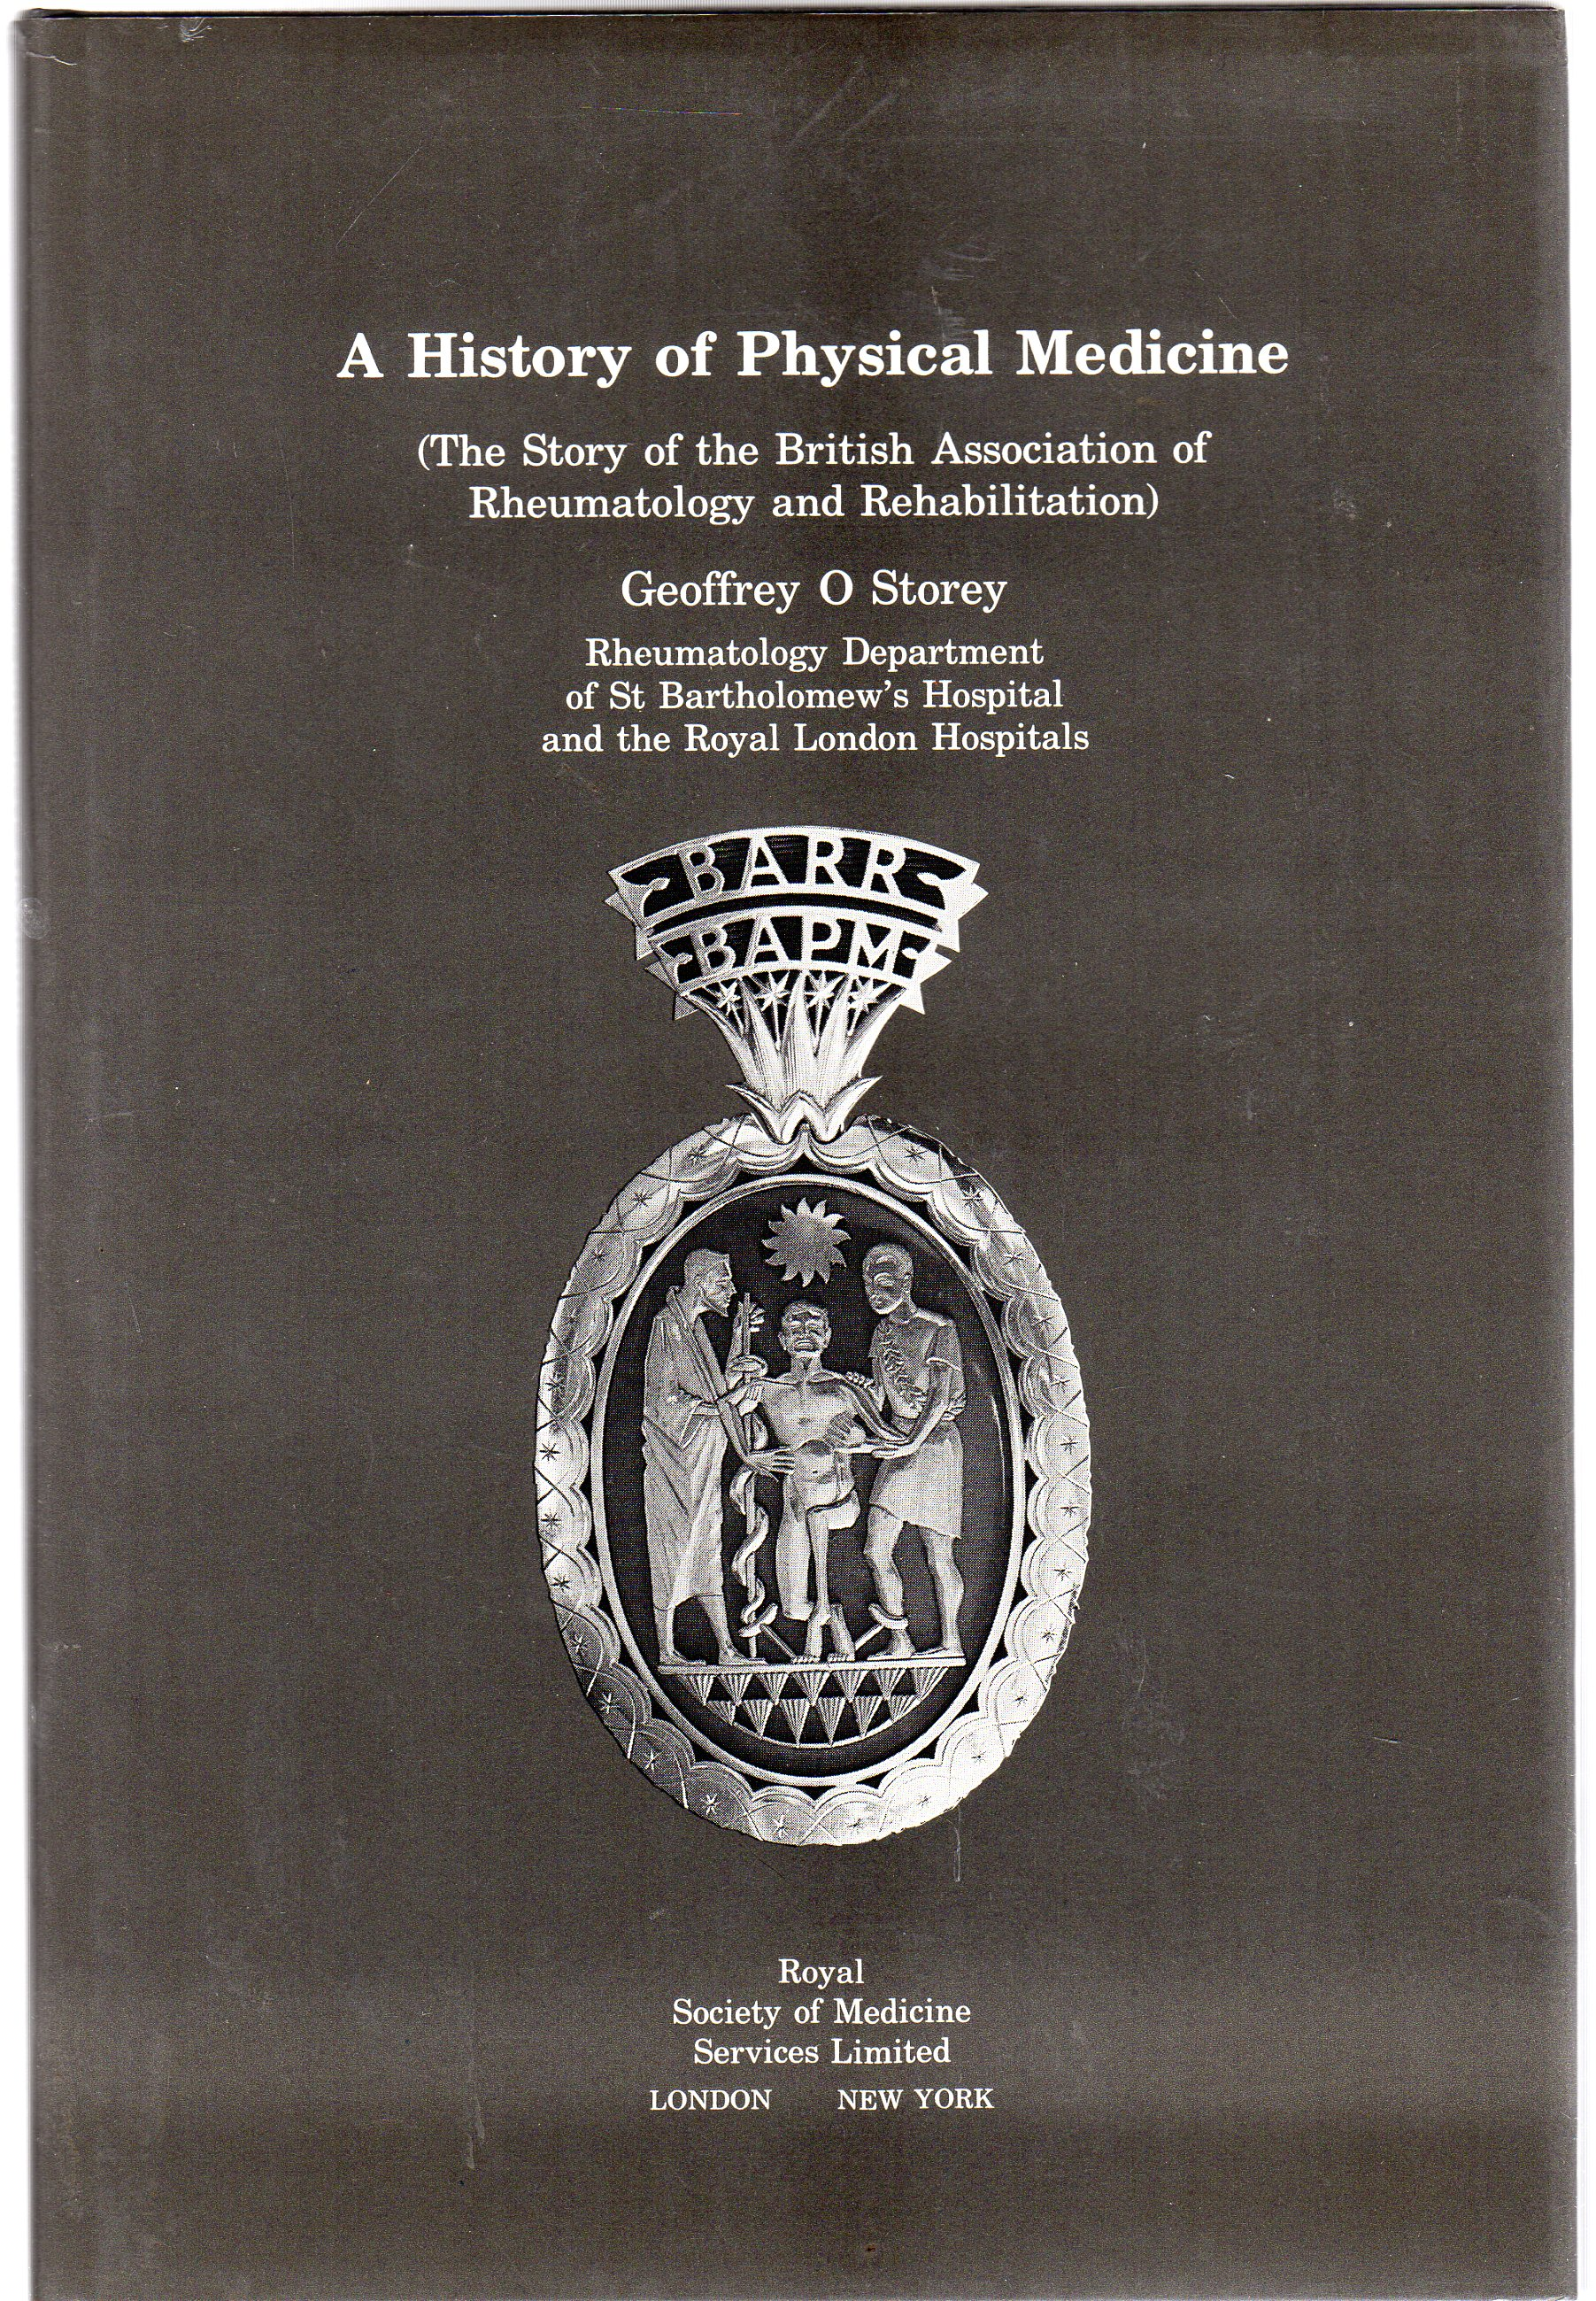 Image for A History of Physical Medicine: Story of the British Association of Rheumatology and Rehabilitation